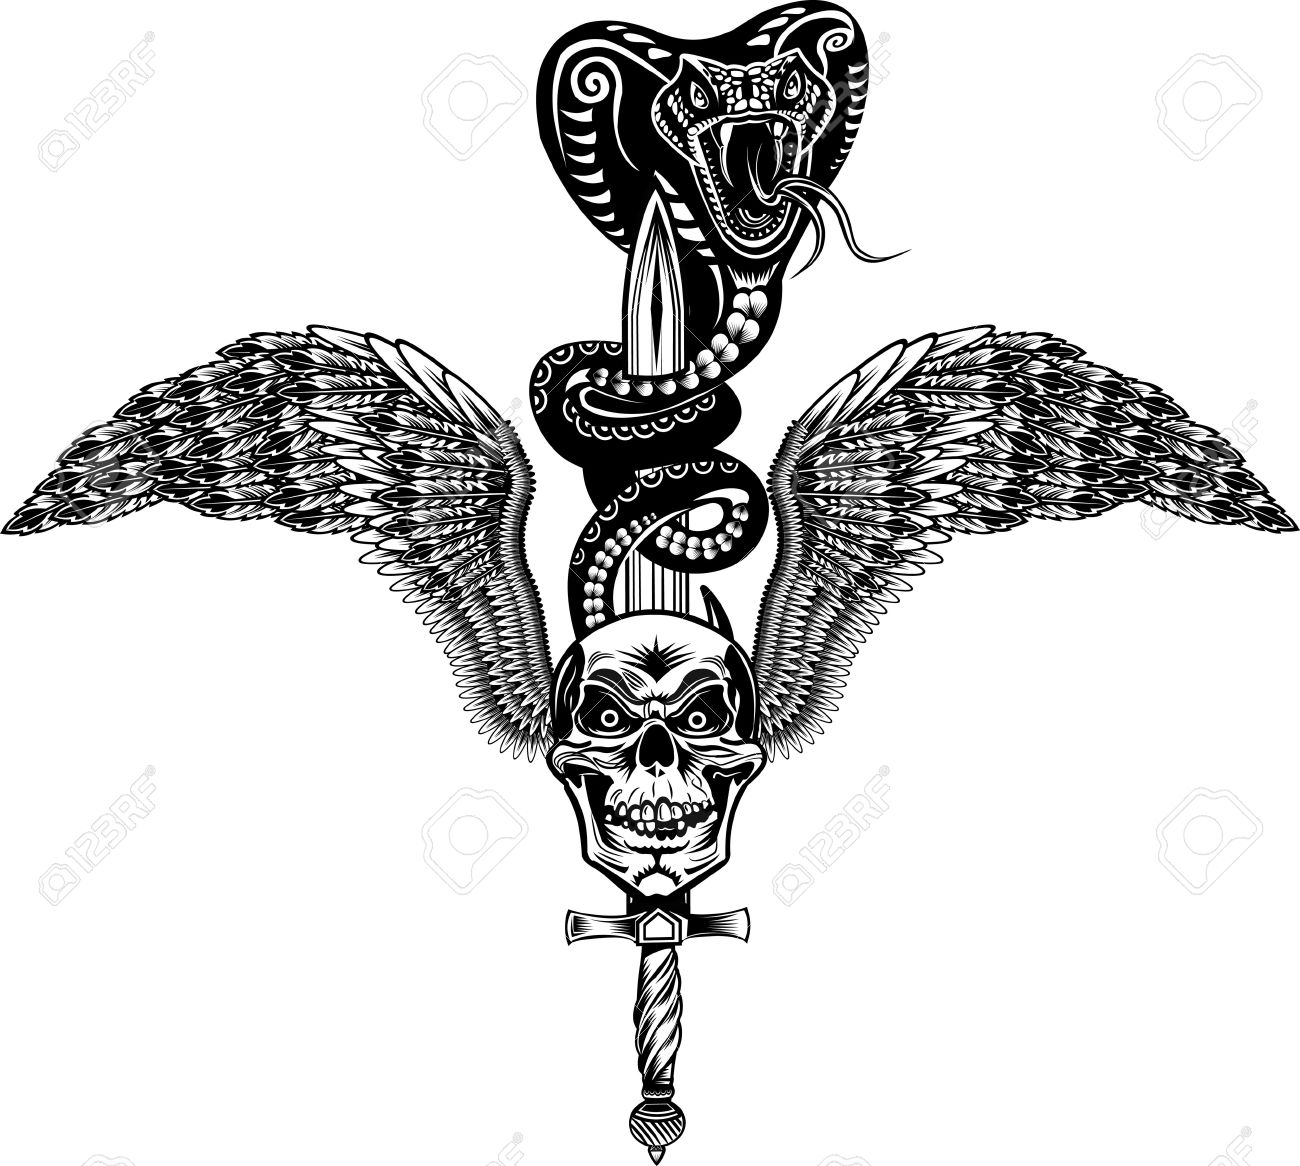 Name:  50056898-winged-skull-with-sword-and-snake-tattoo-cobra.jpg Views: 222 Size:  210.7 KB